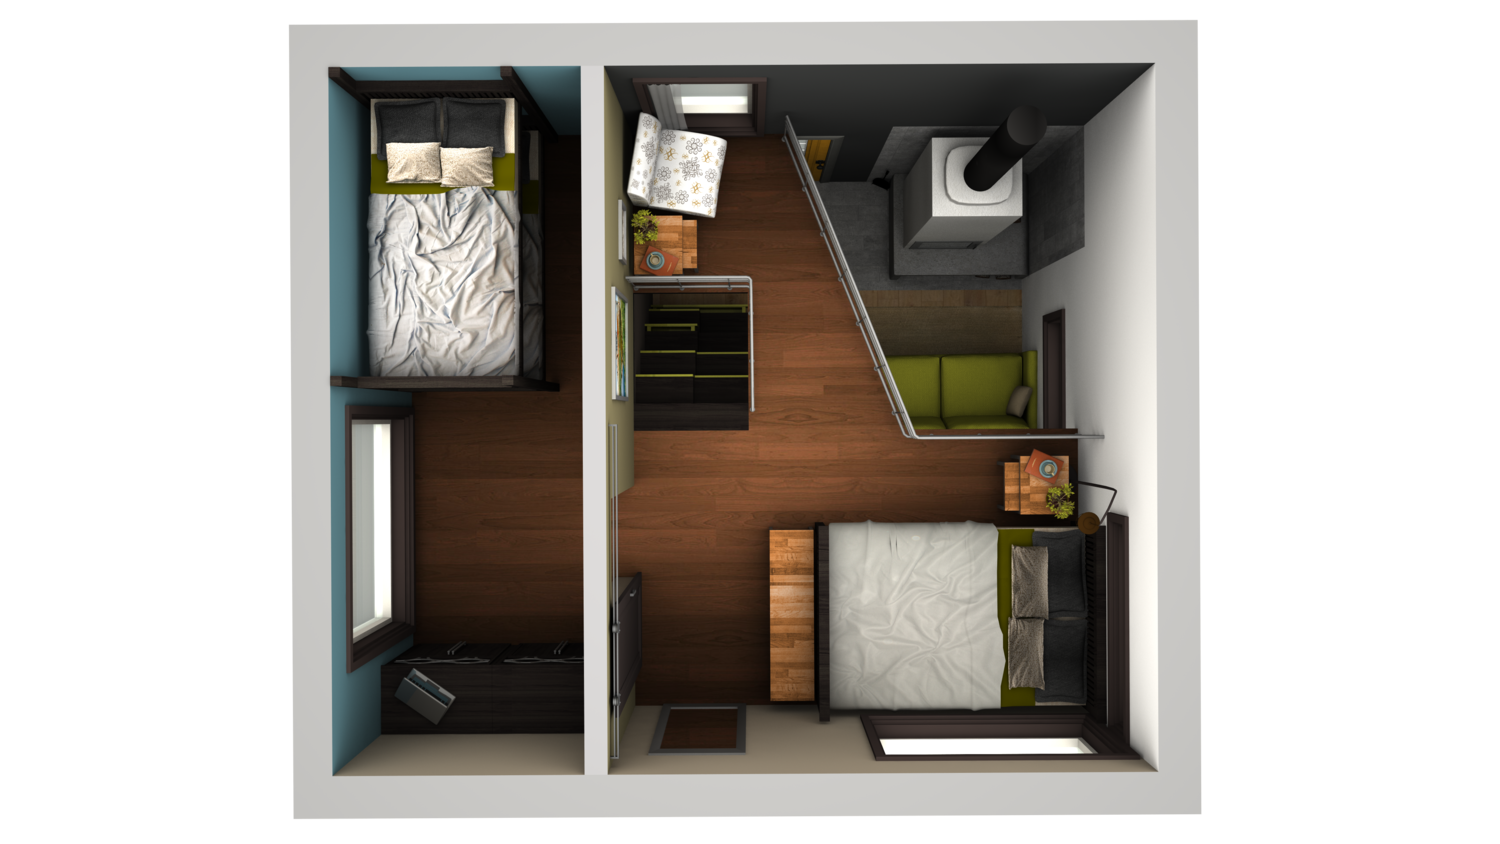 Tiny Home Designs: I Cannot Stop Obsessing Over This Tiny Home Design. (More